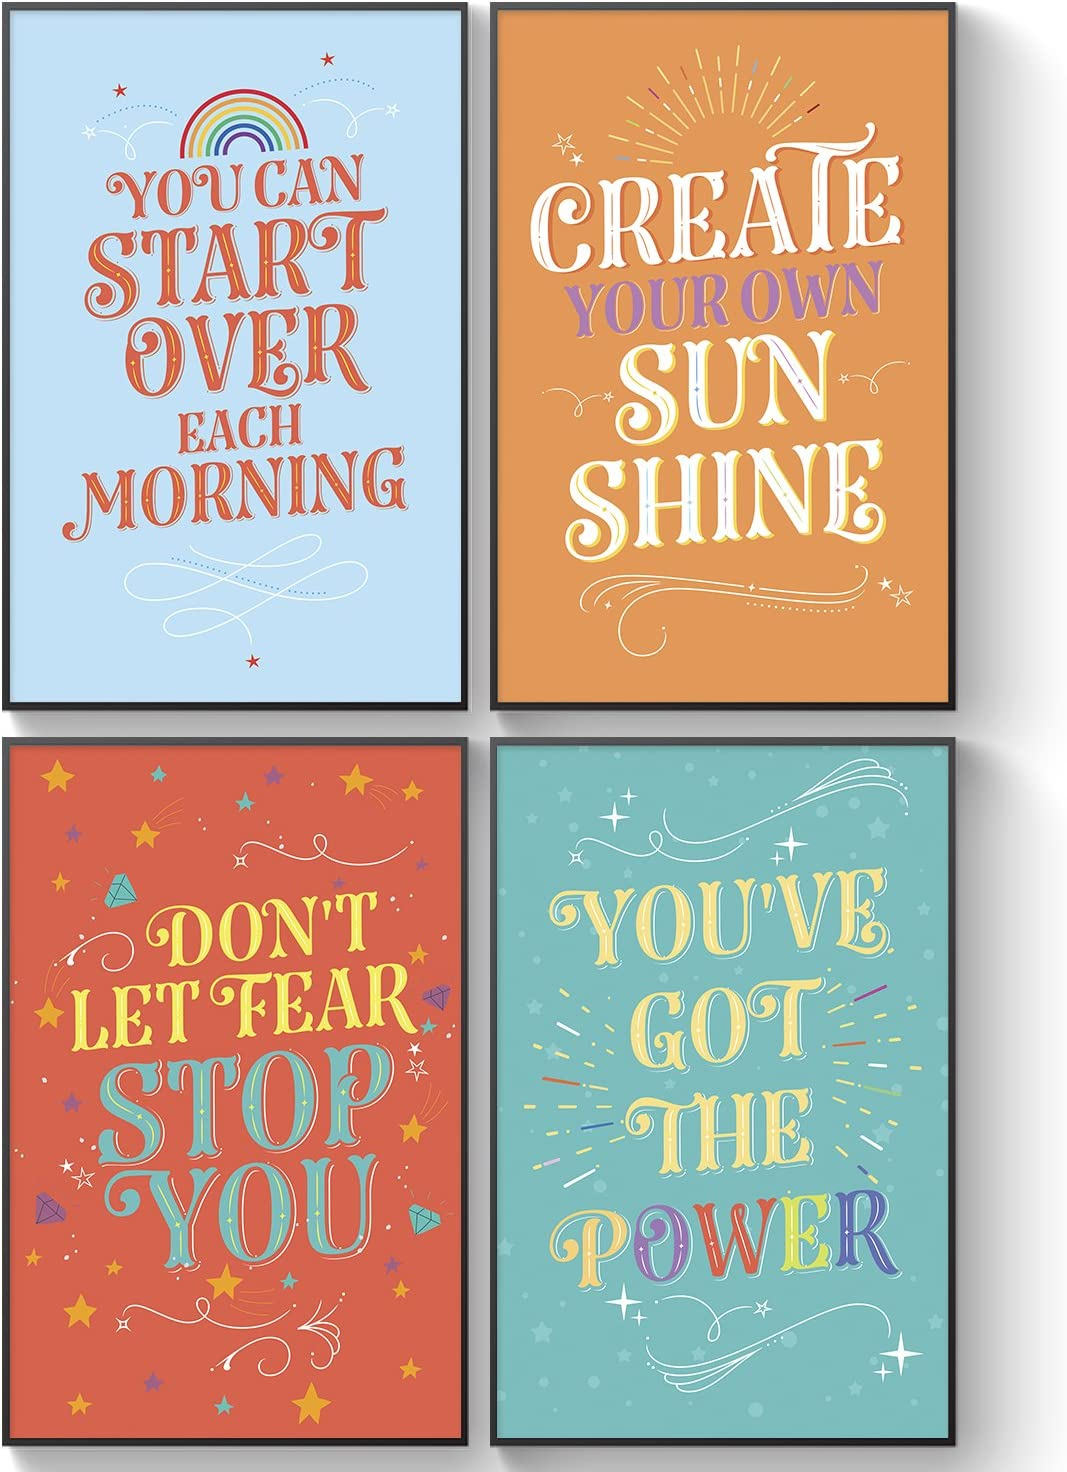 Shareable Kids Posters, Unusual Friendship Gift, Inspirational Wall Art for Children - Motivational Posters, Graduation Gifts